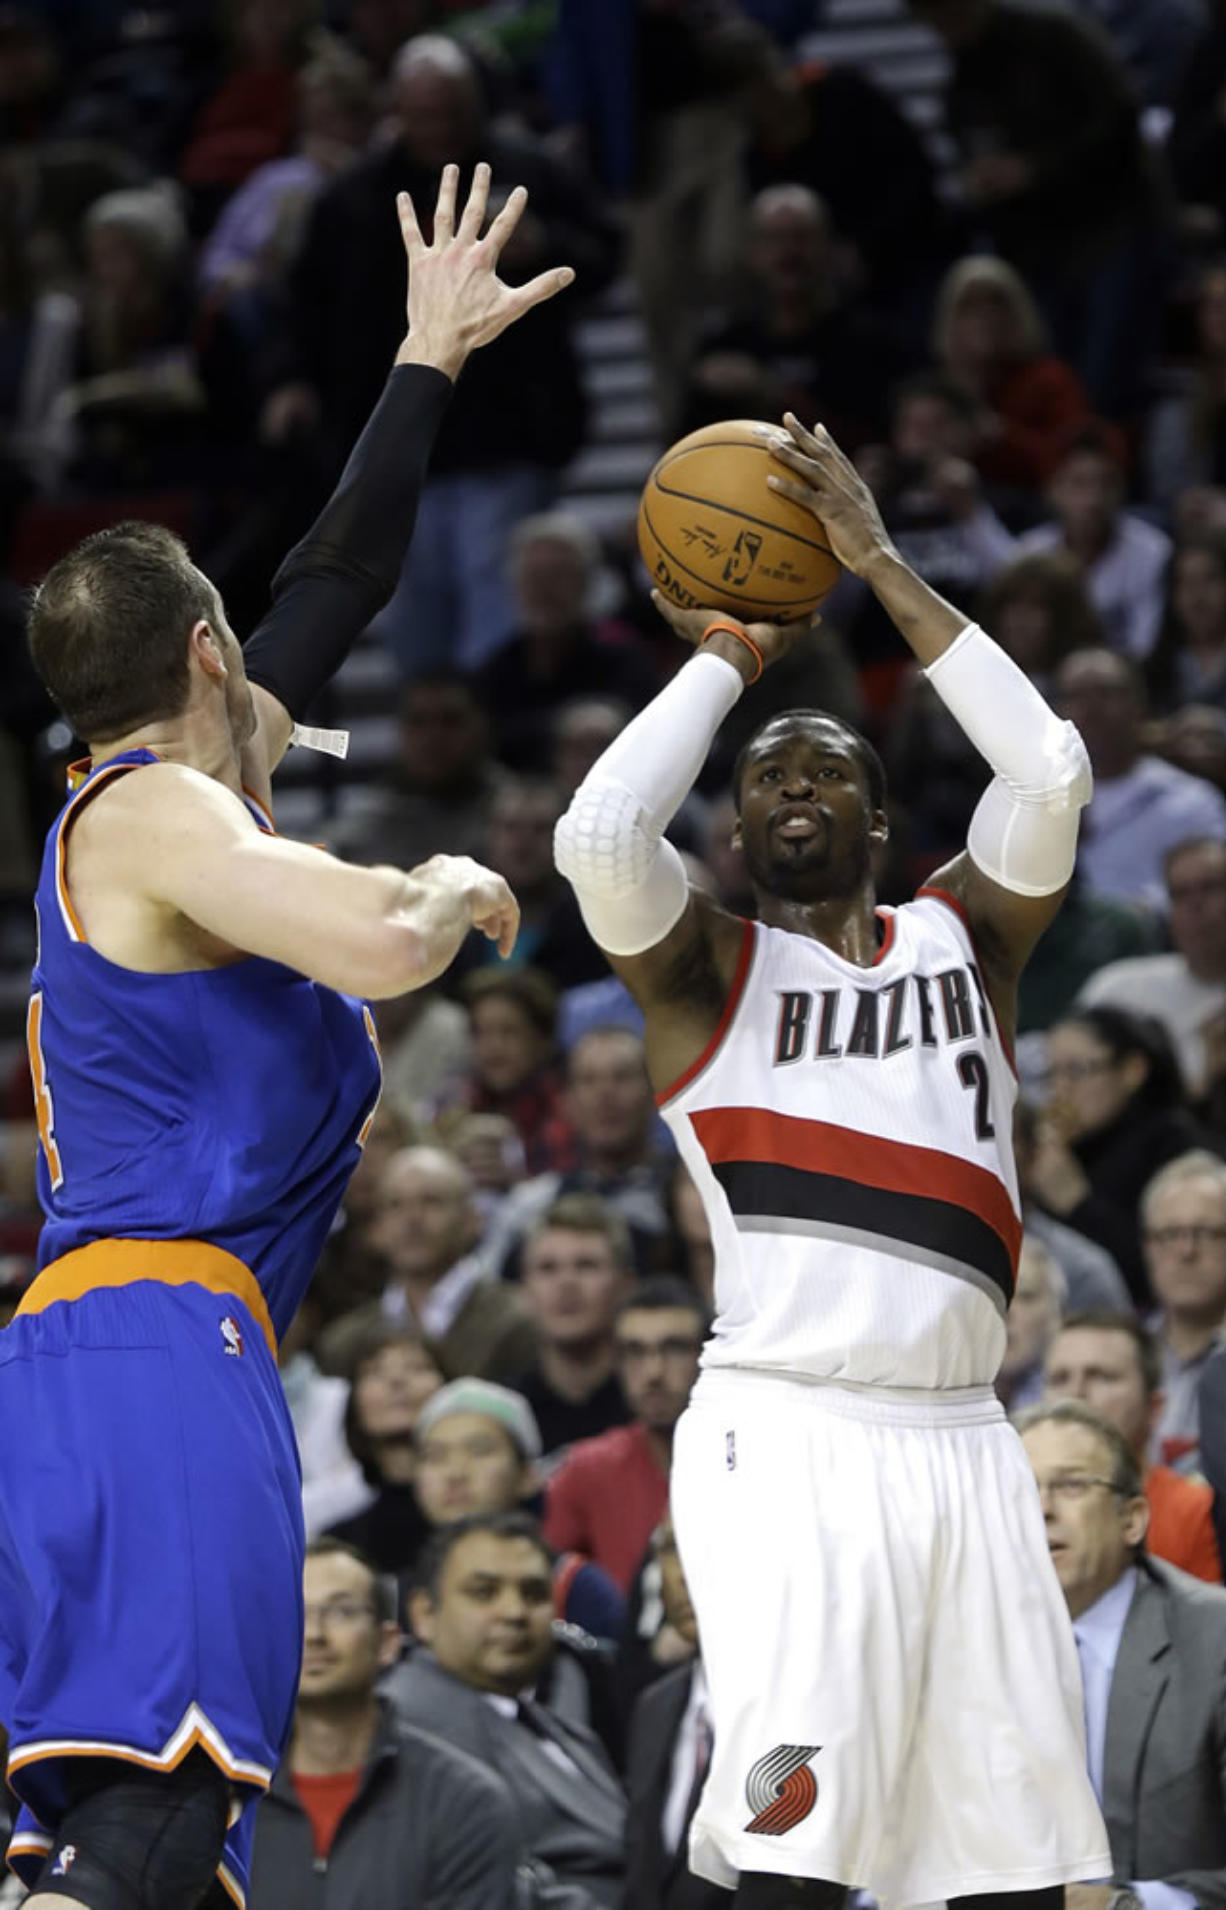 Portland Trail Blazers guard Wesley Matthews, right, leads the NBA in made 3-pointers. He will compete in the 3-point contest at the NBA's All-Star weekend Feb.